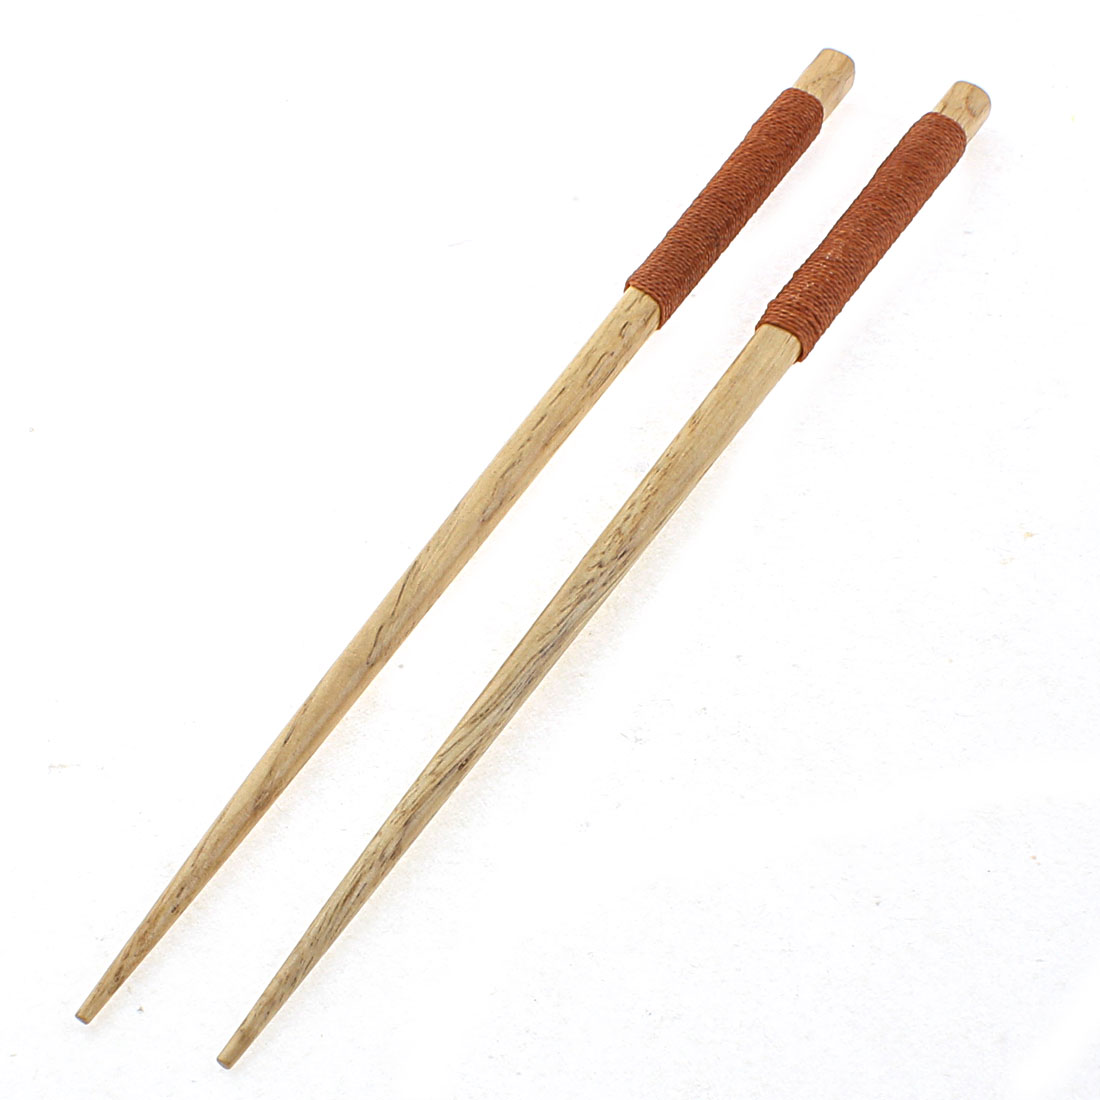 Home Kitchen Tableware Twine Nonslip Handle Wooden Chopsticks 22.5cm Length Pair